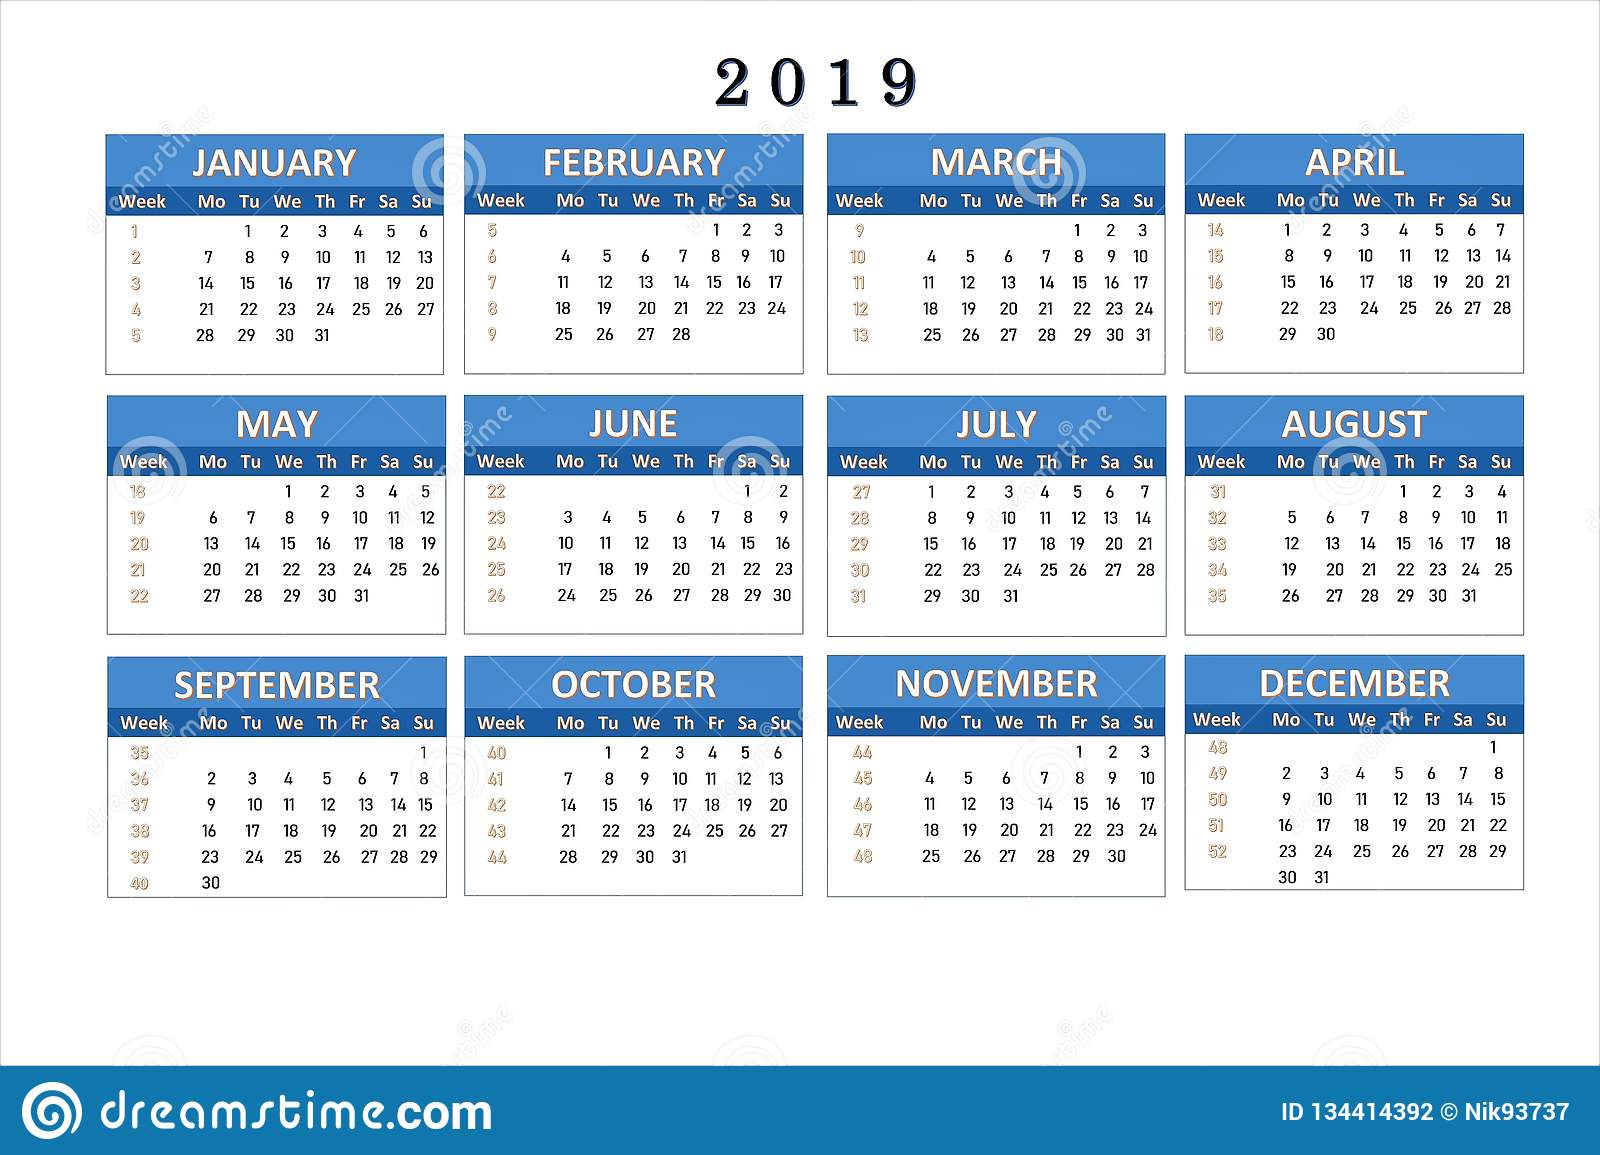 Calendars That Work 2019 Calendar For 2019 For Notes And Office Work. Stock Illustration